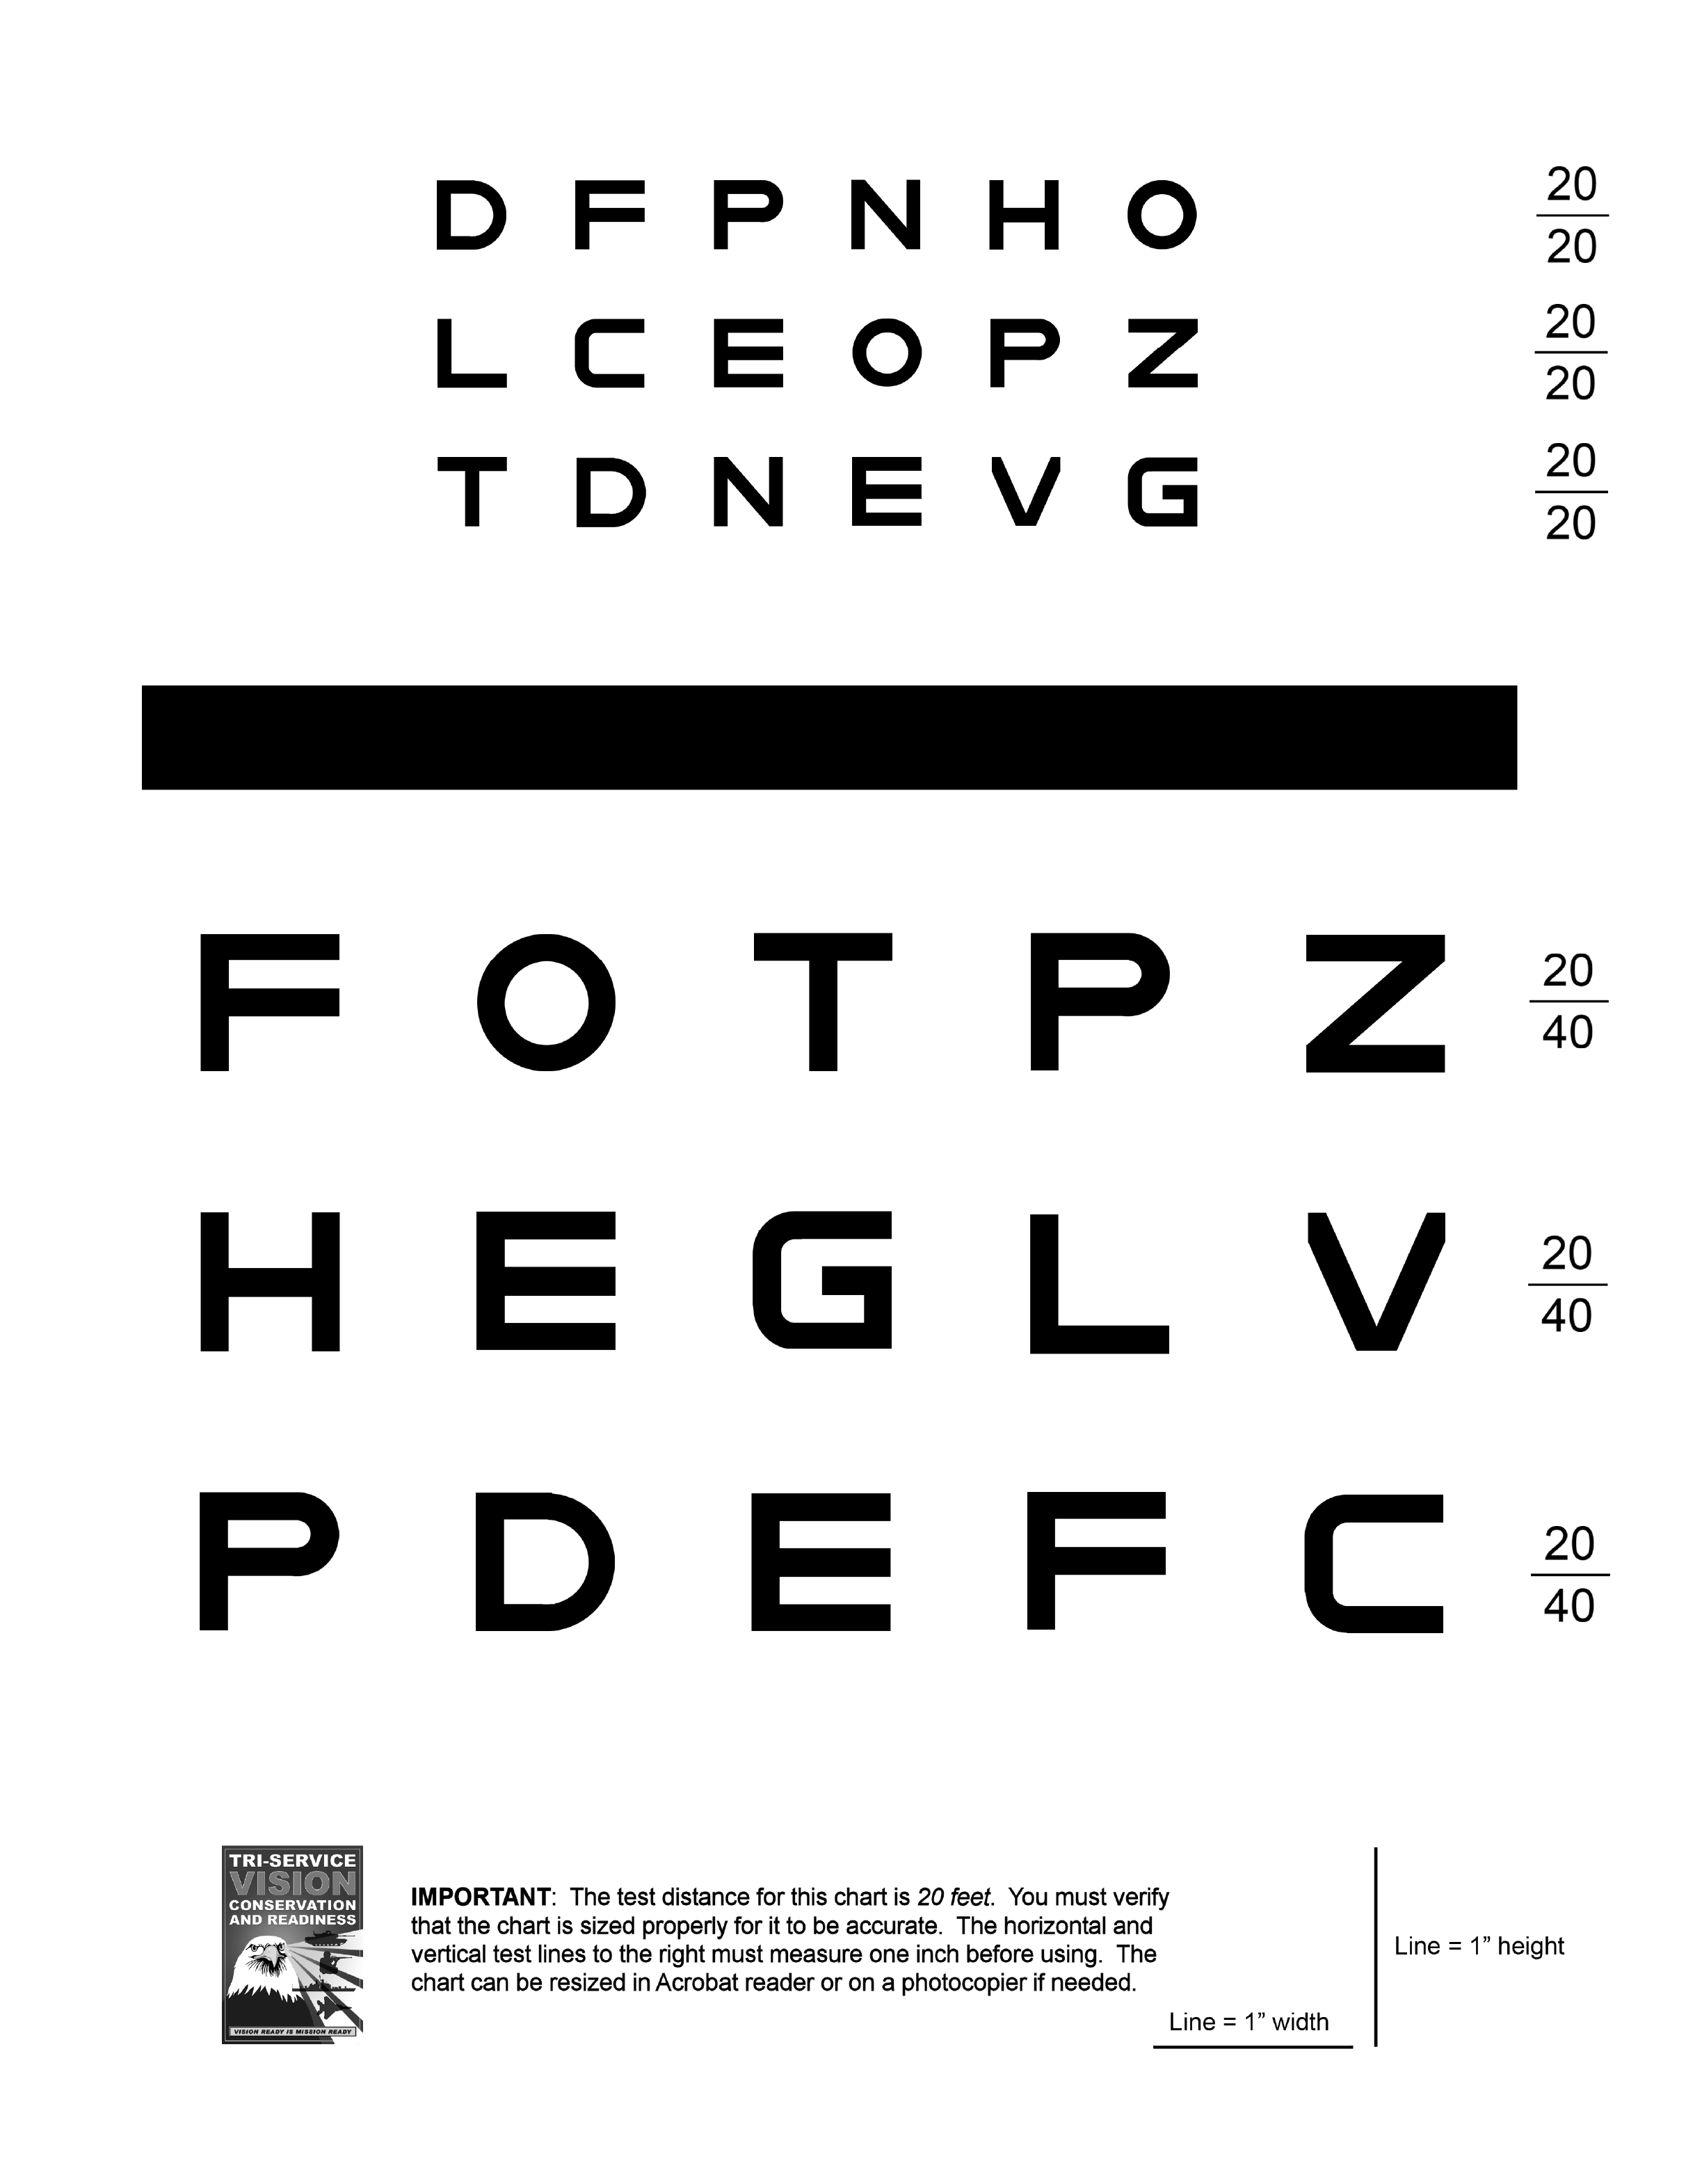 Eye Chart And Size Verification Instructions Free Download